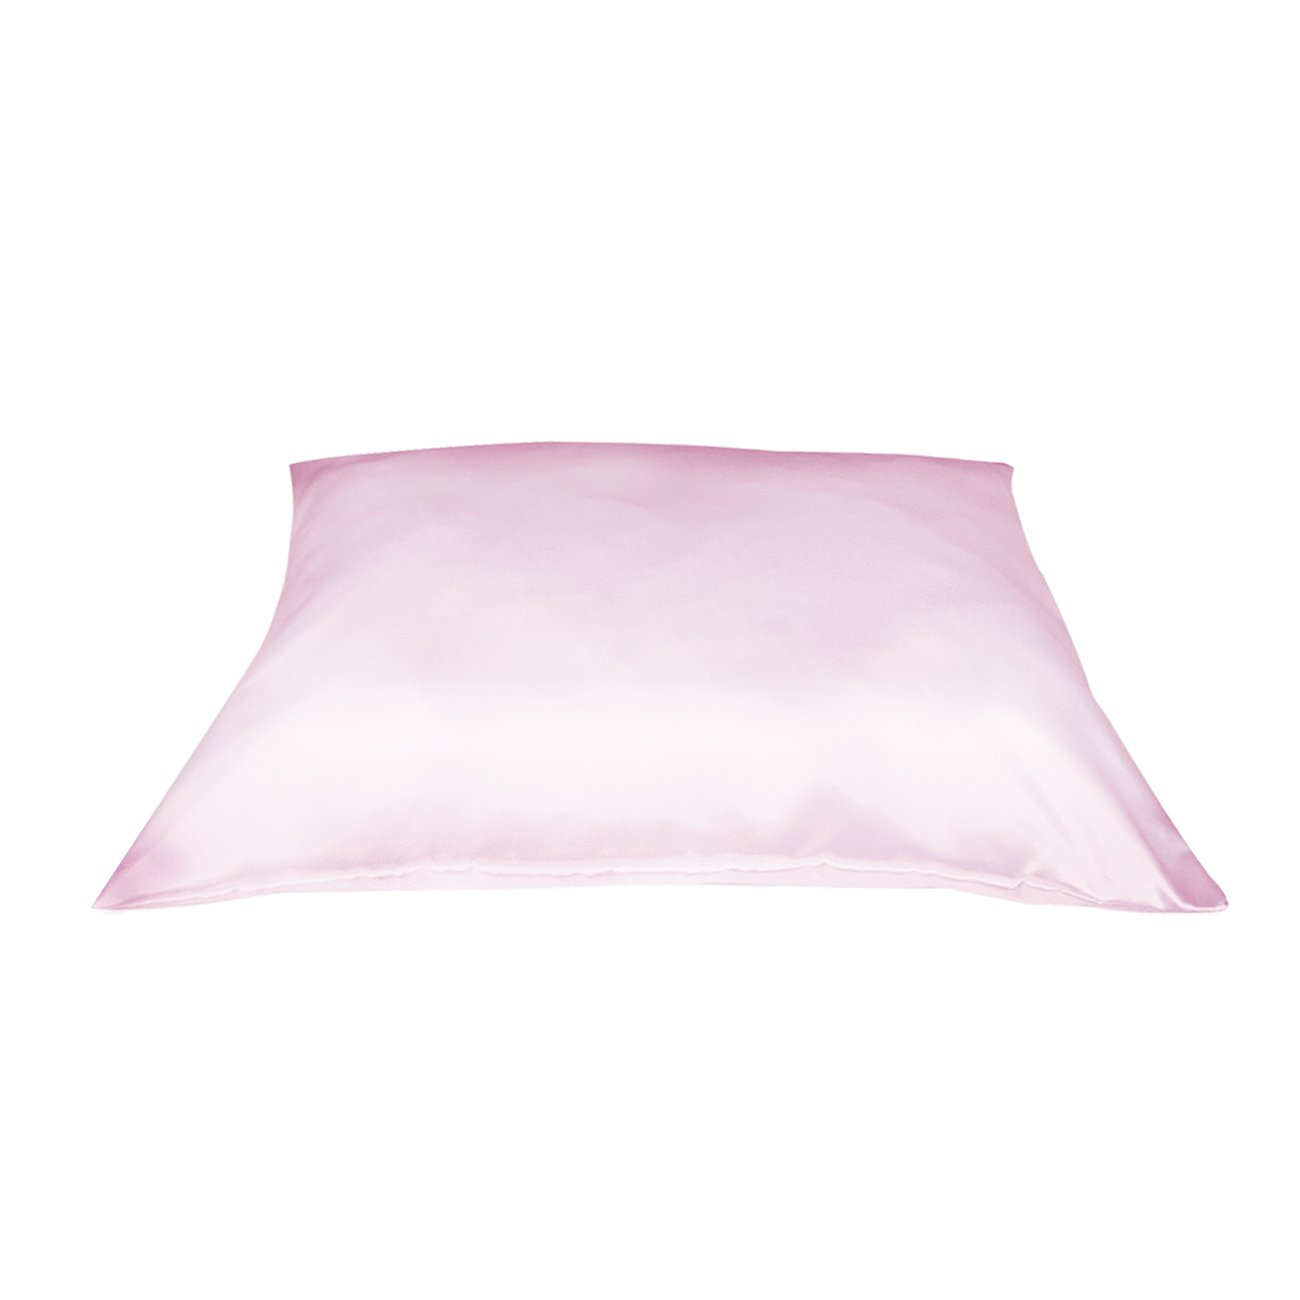 BETTY DAIN Satin Pillowcase, Pink 121-PNK-1PK